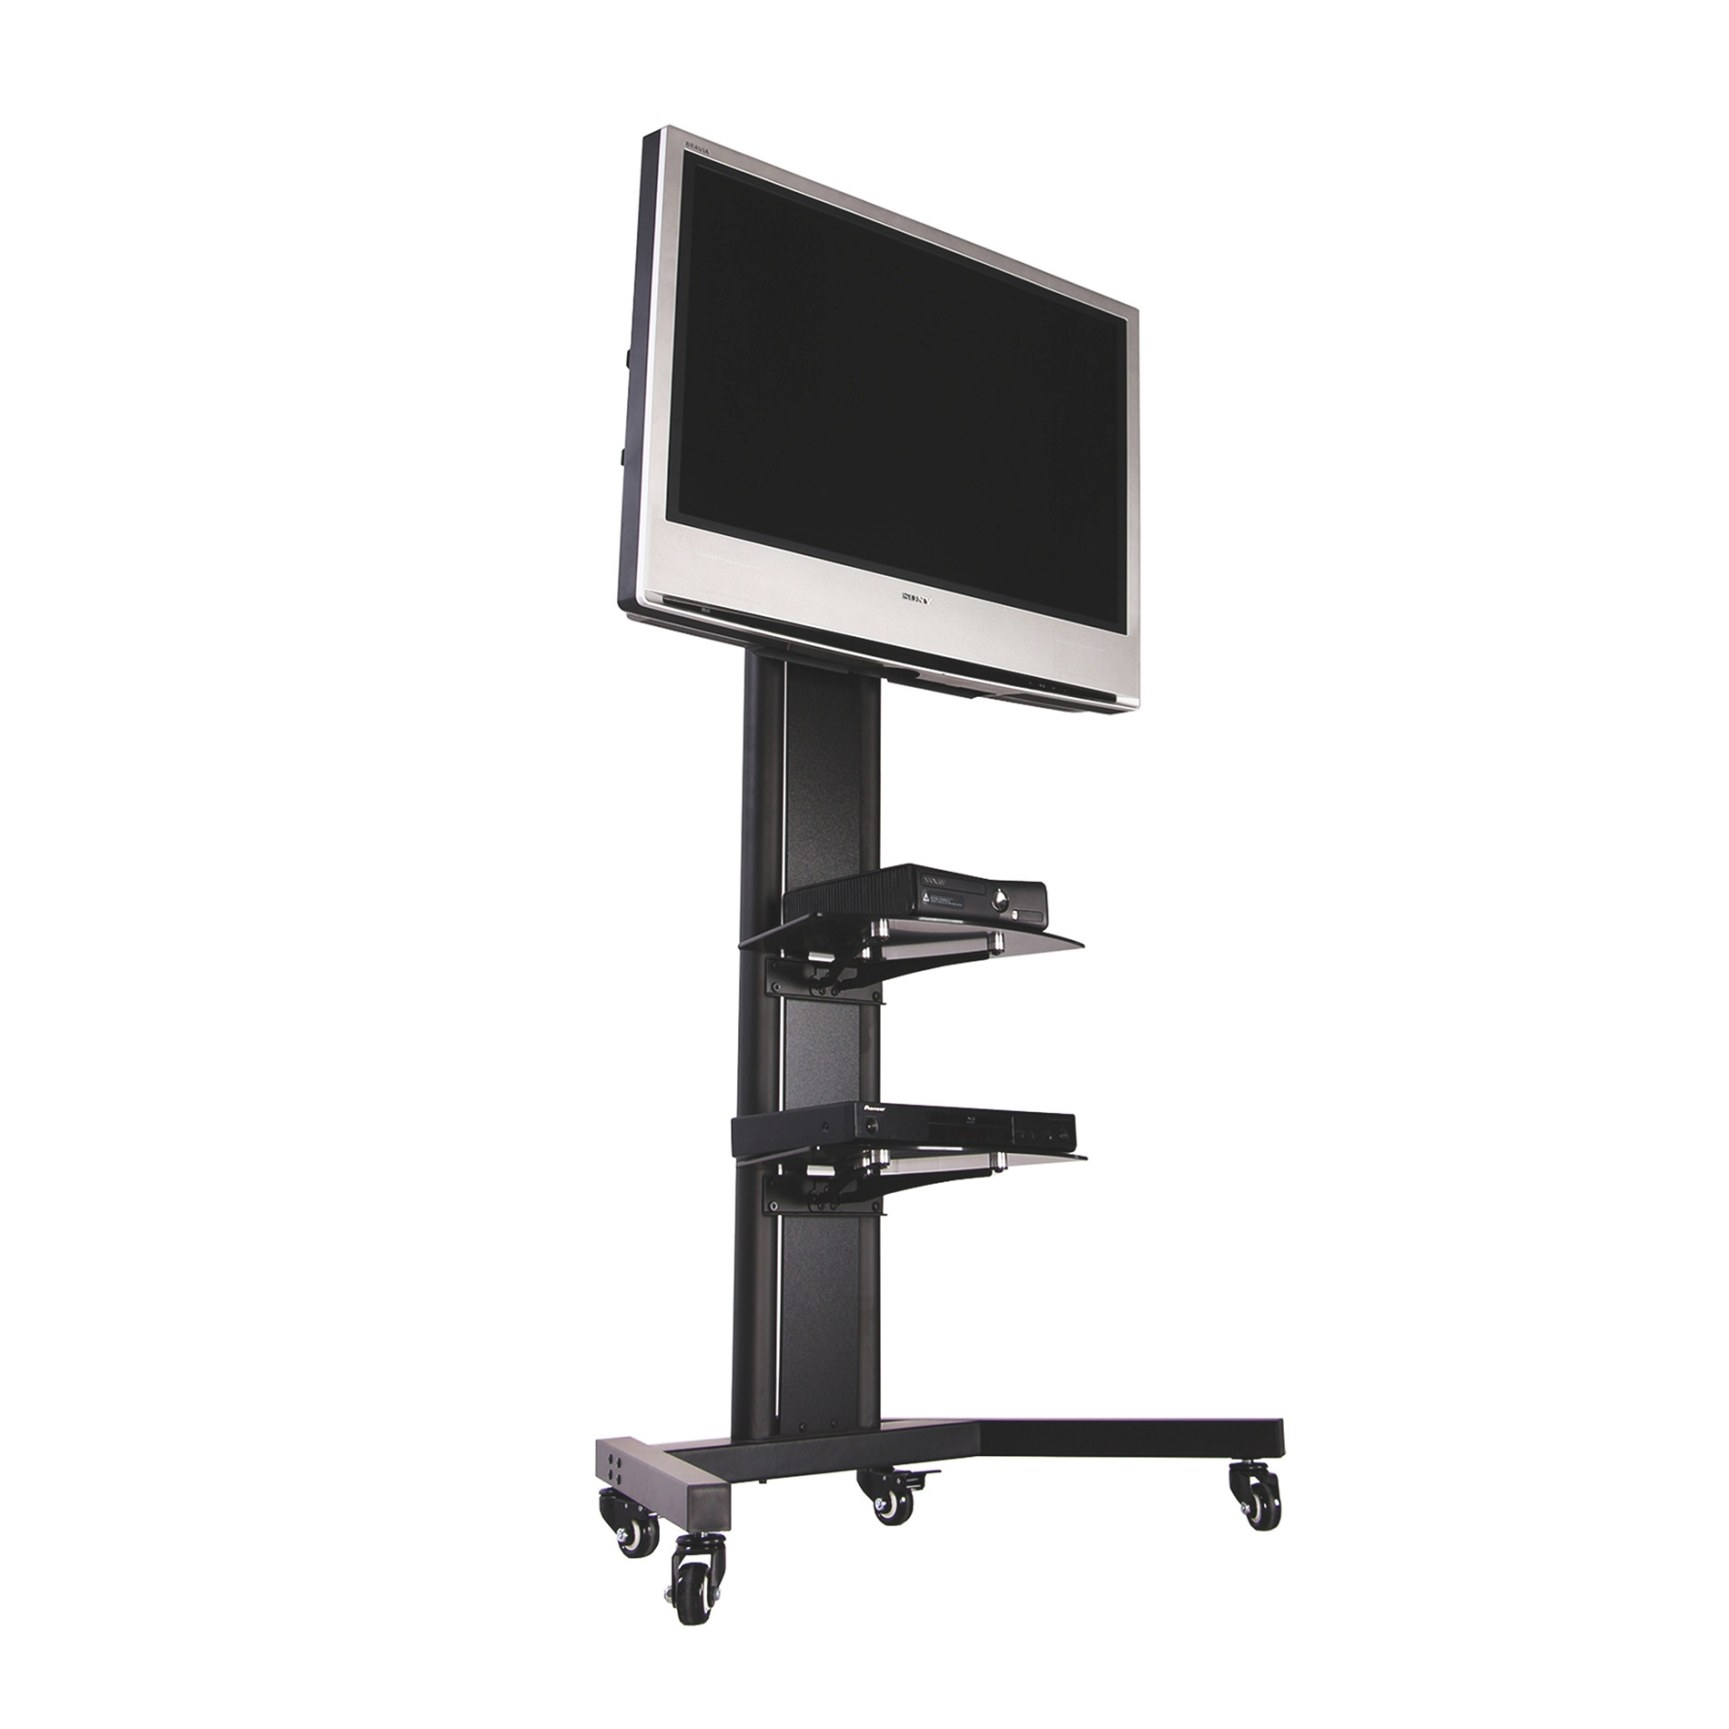 Fitueyes Black Tv Cart Mobile Tv Stand For 32 To 65 Inch inside Tv Stand With Wheels